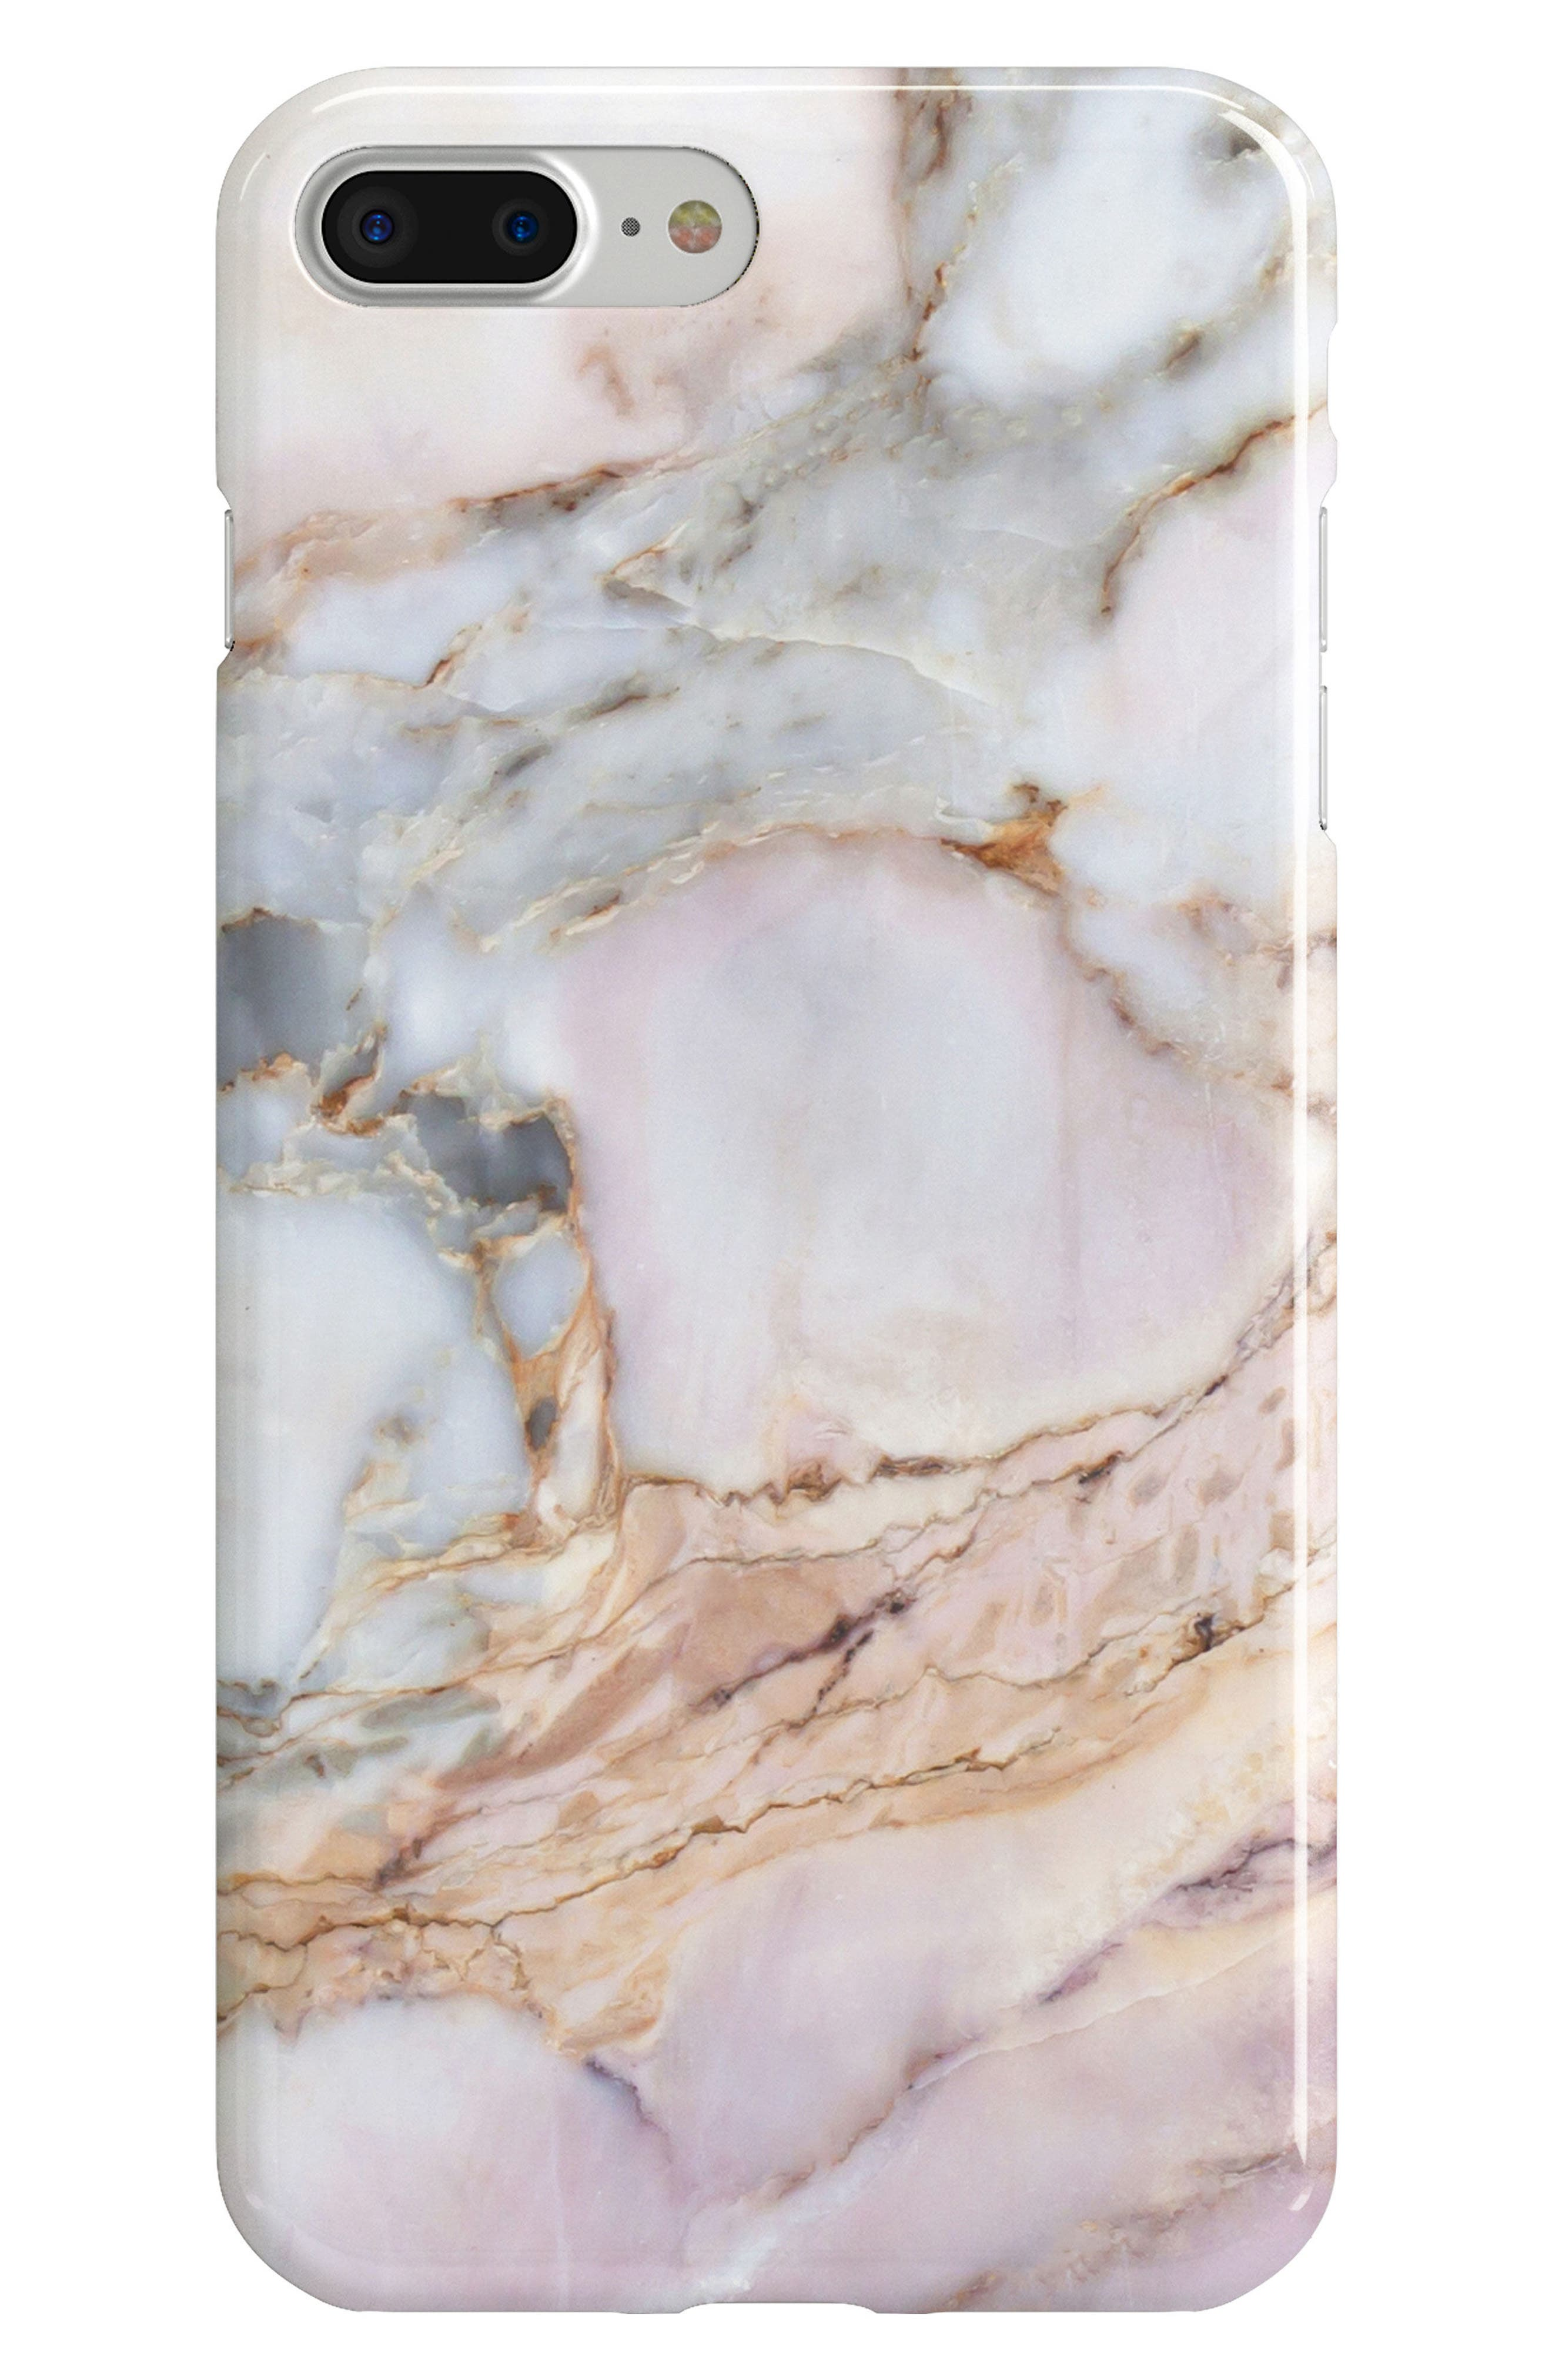 iphone 7 cell phone casesIphone 7 Nice Cases Iphone 7 Cases Designer Cell Phone Case Shop Iphone 7 Skin Case Fashion #15